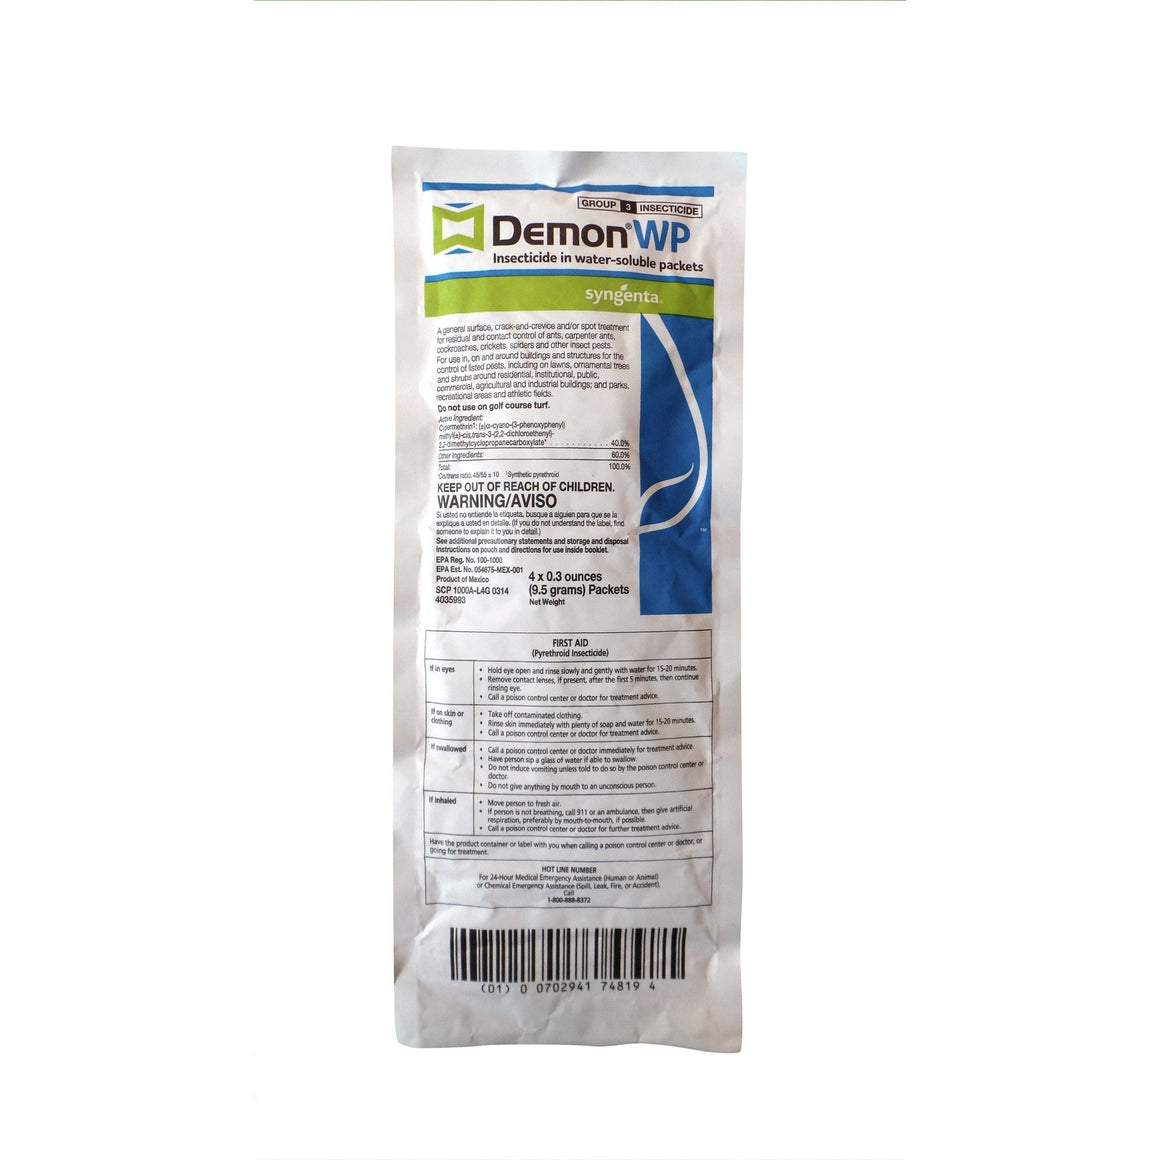 Demon WP Insecticide - 4 x 0.3 Oz. Packets - Seed World